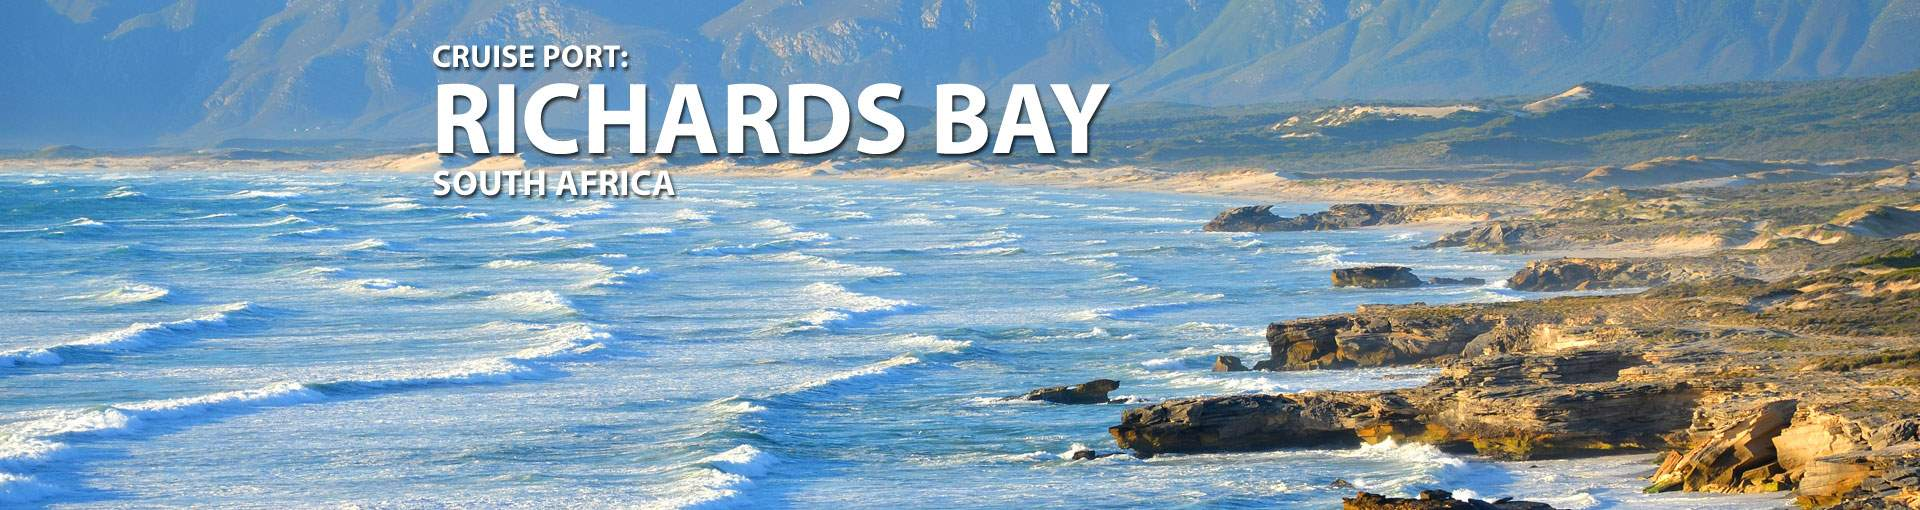 Cruises to Richards Bay, South Africa